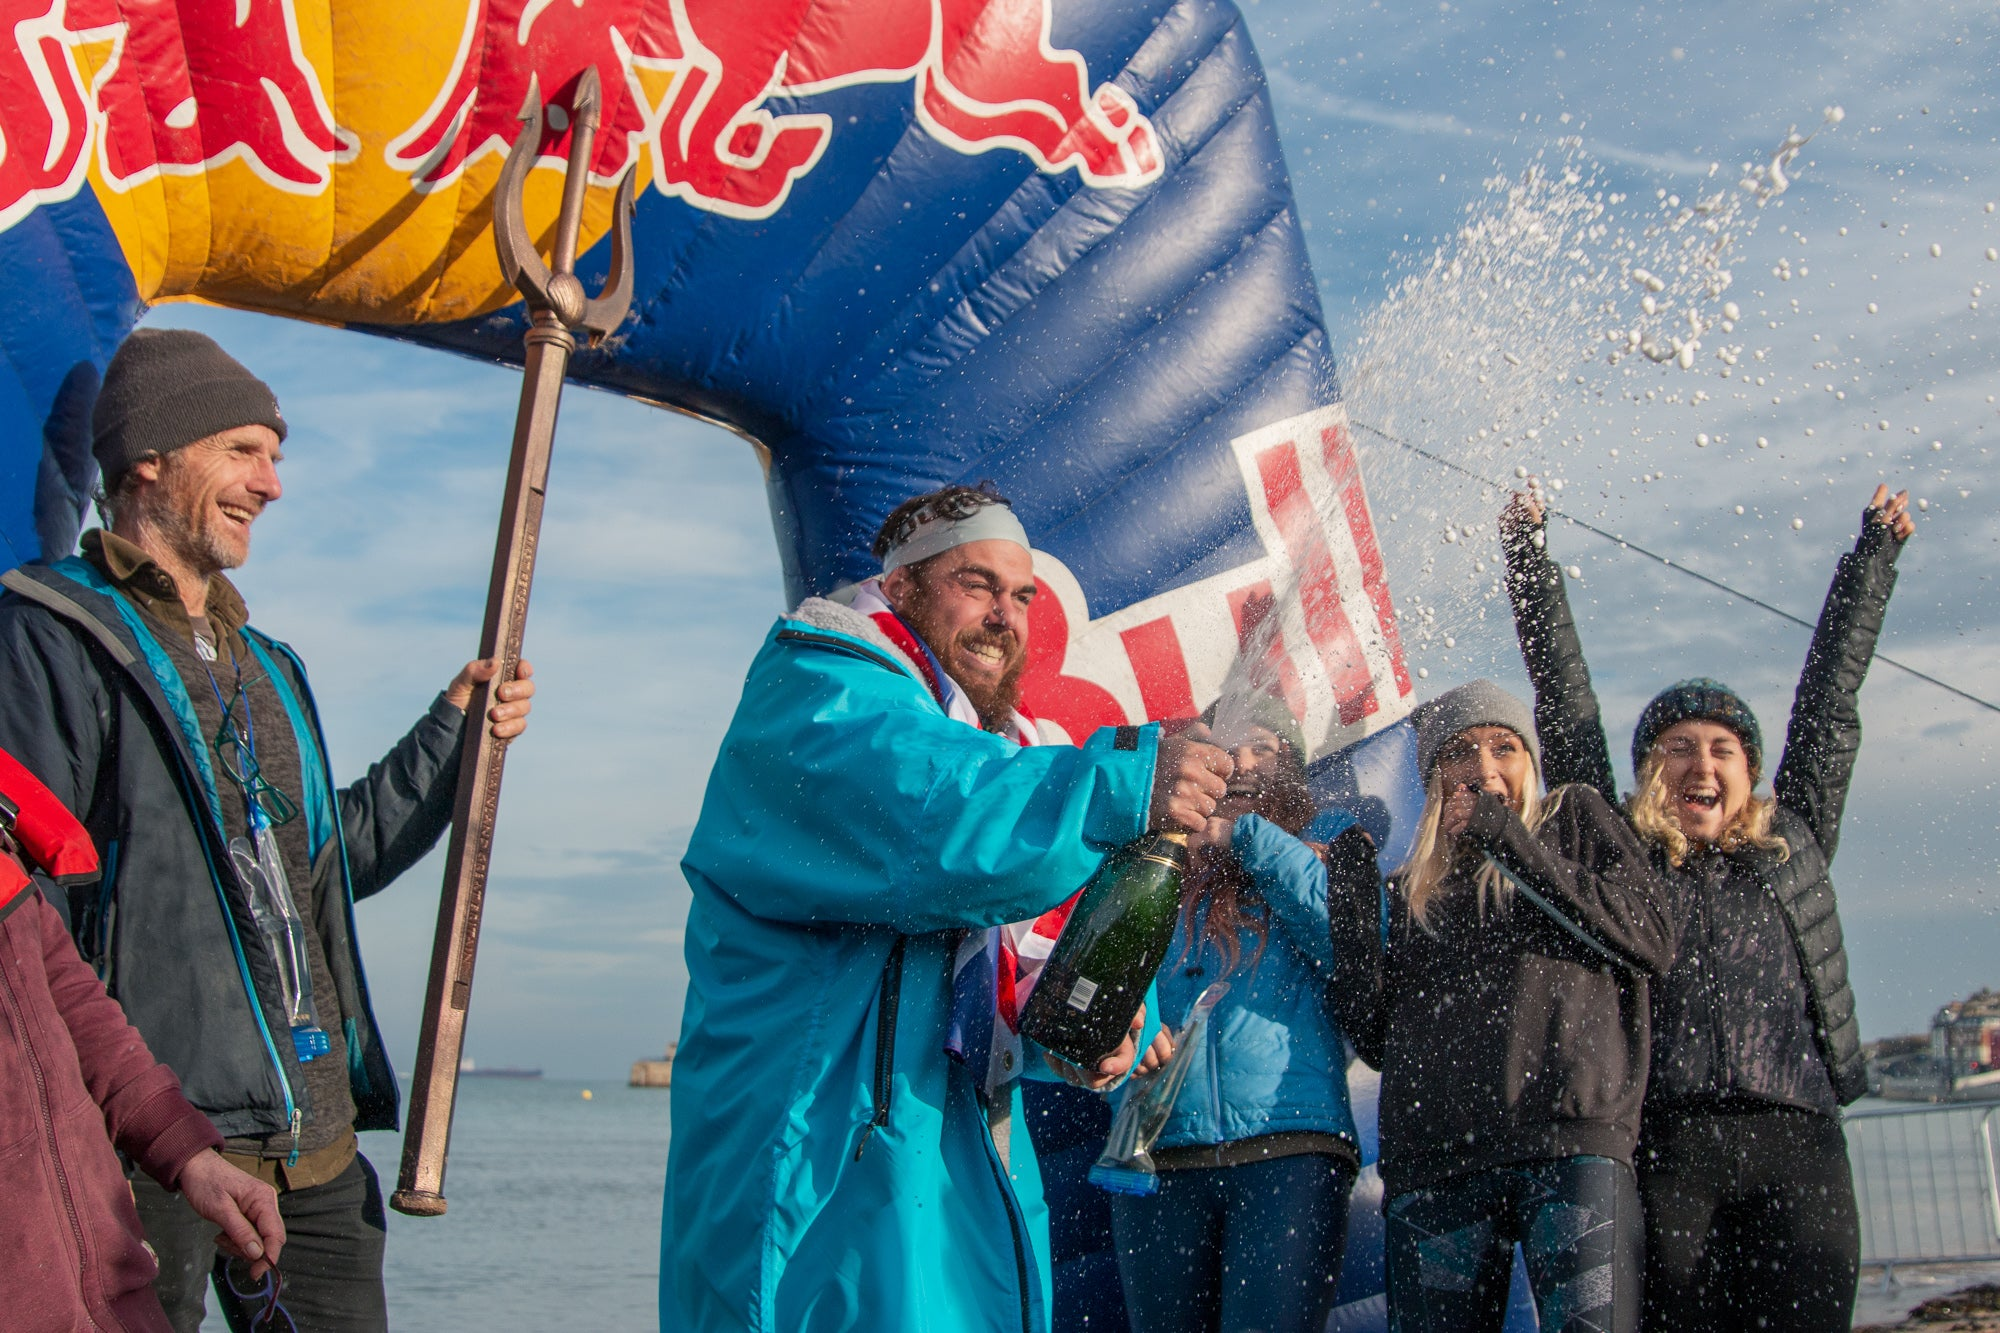 Ross Edgley celebrates completing his Great British Swim in his dryrobe